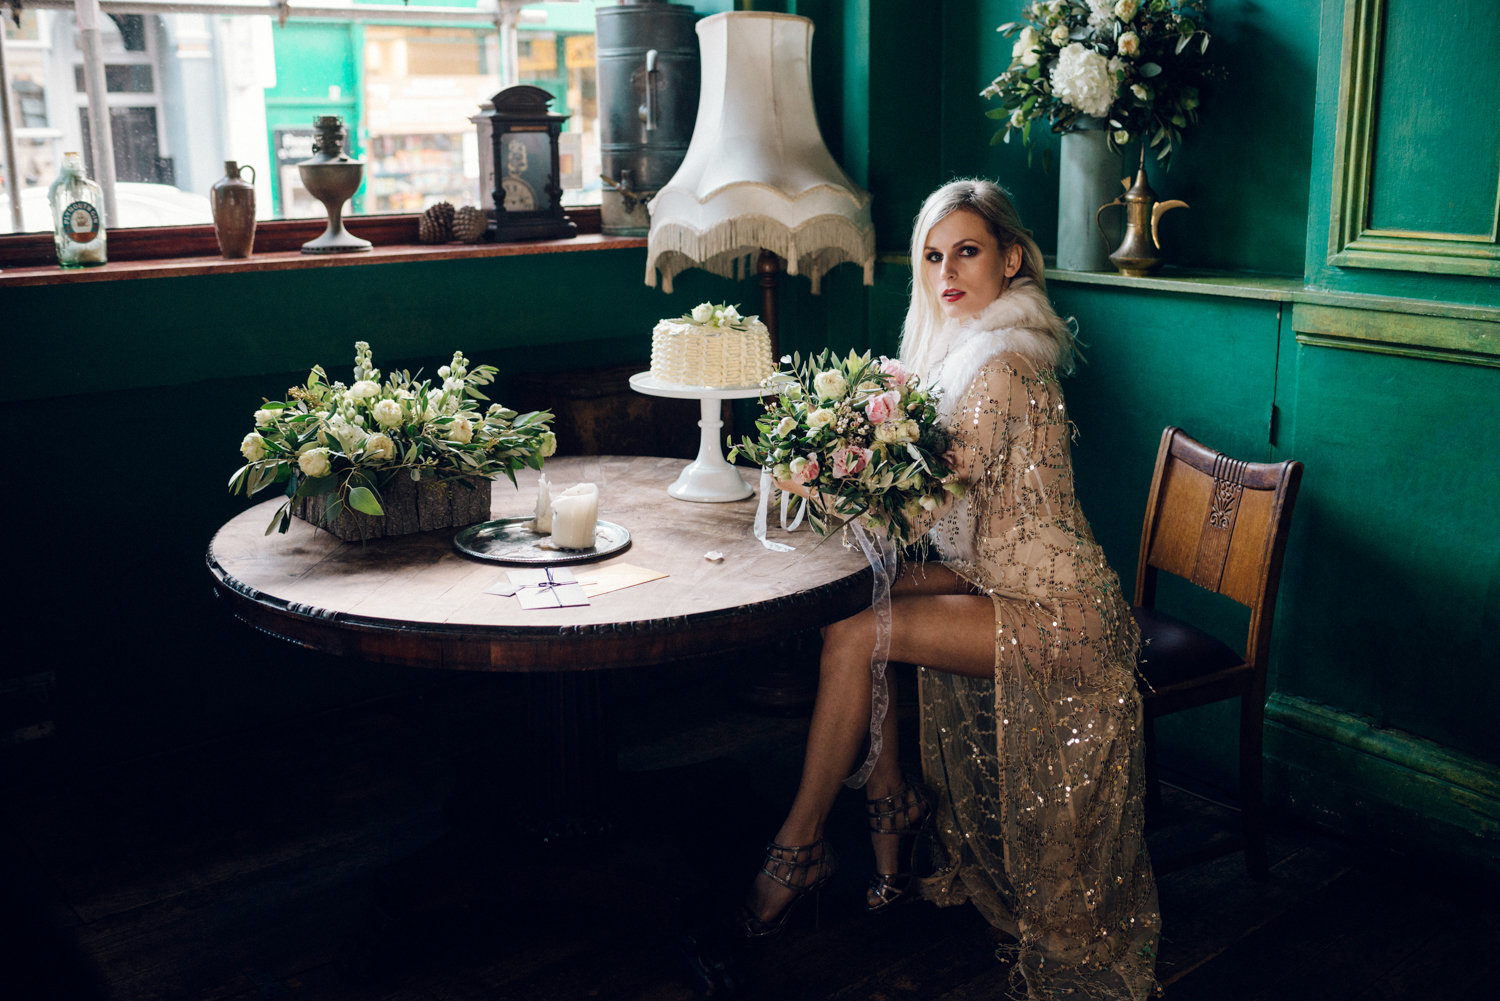 Margo Ryszczuk Photography - Its all about the glitter, sparkle and shine art deco inspired wedding shoot 7443265327342